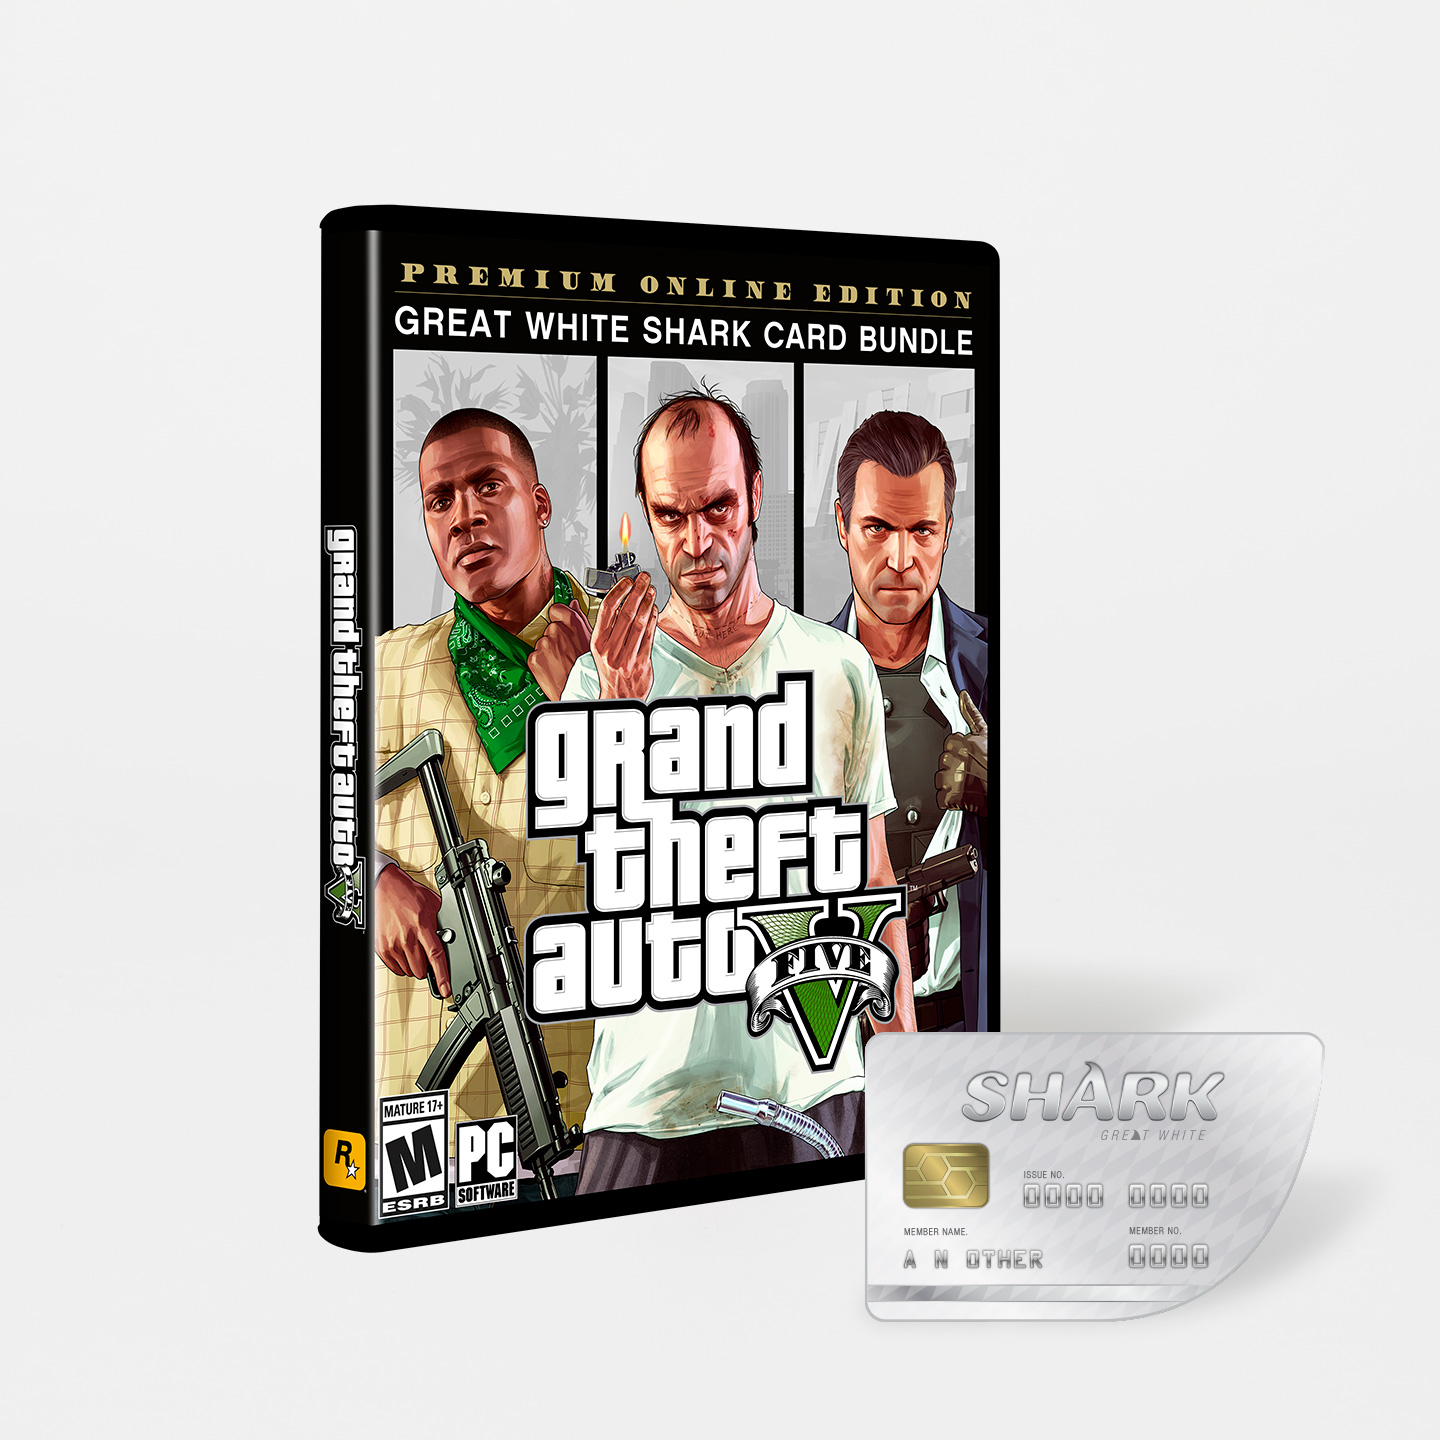 Grand Theft Auto V: Premium Online Edition & Great White